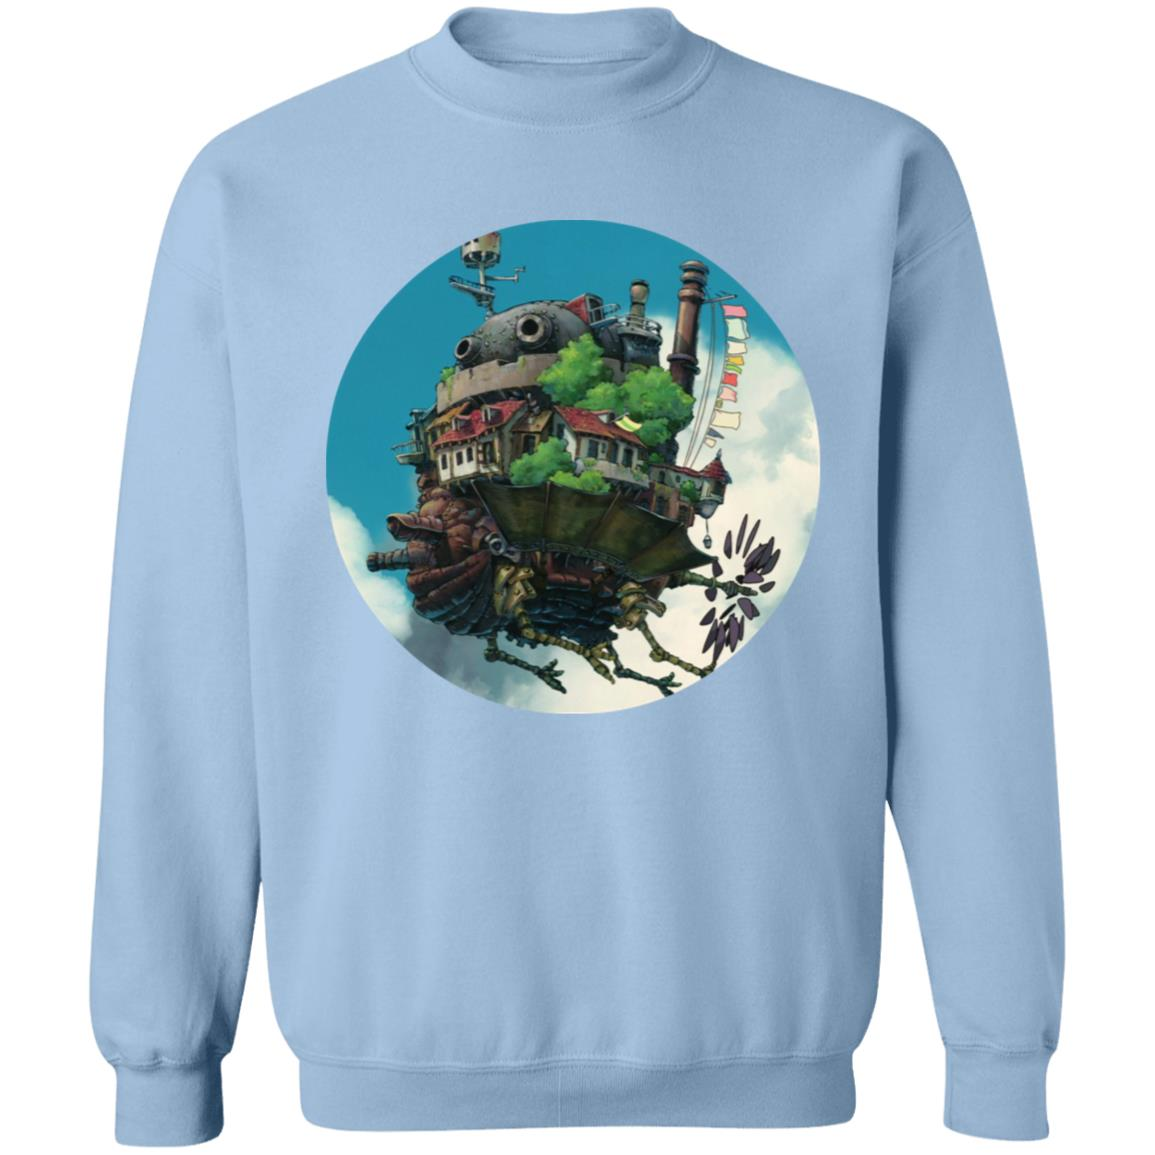 Howl's Moving Castle – Flying on the Sky Sweatshirt